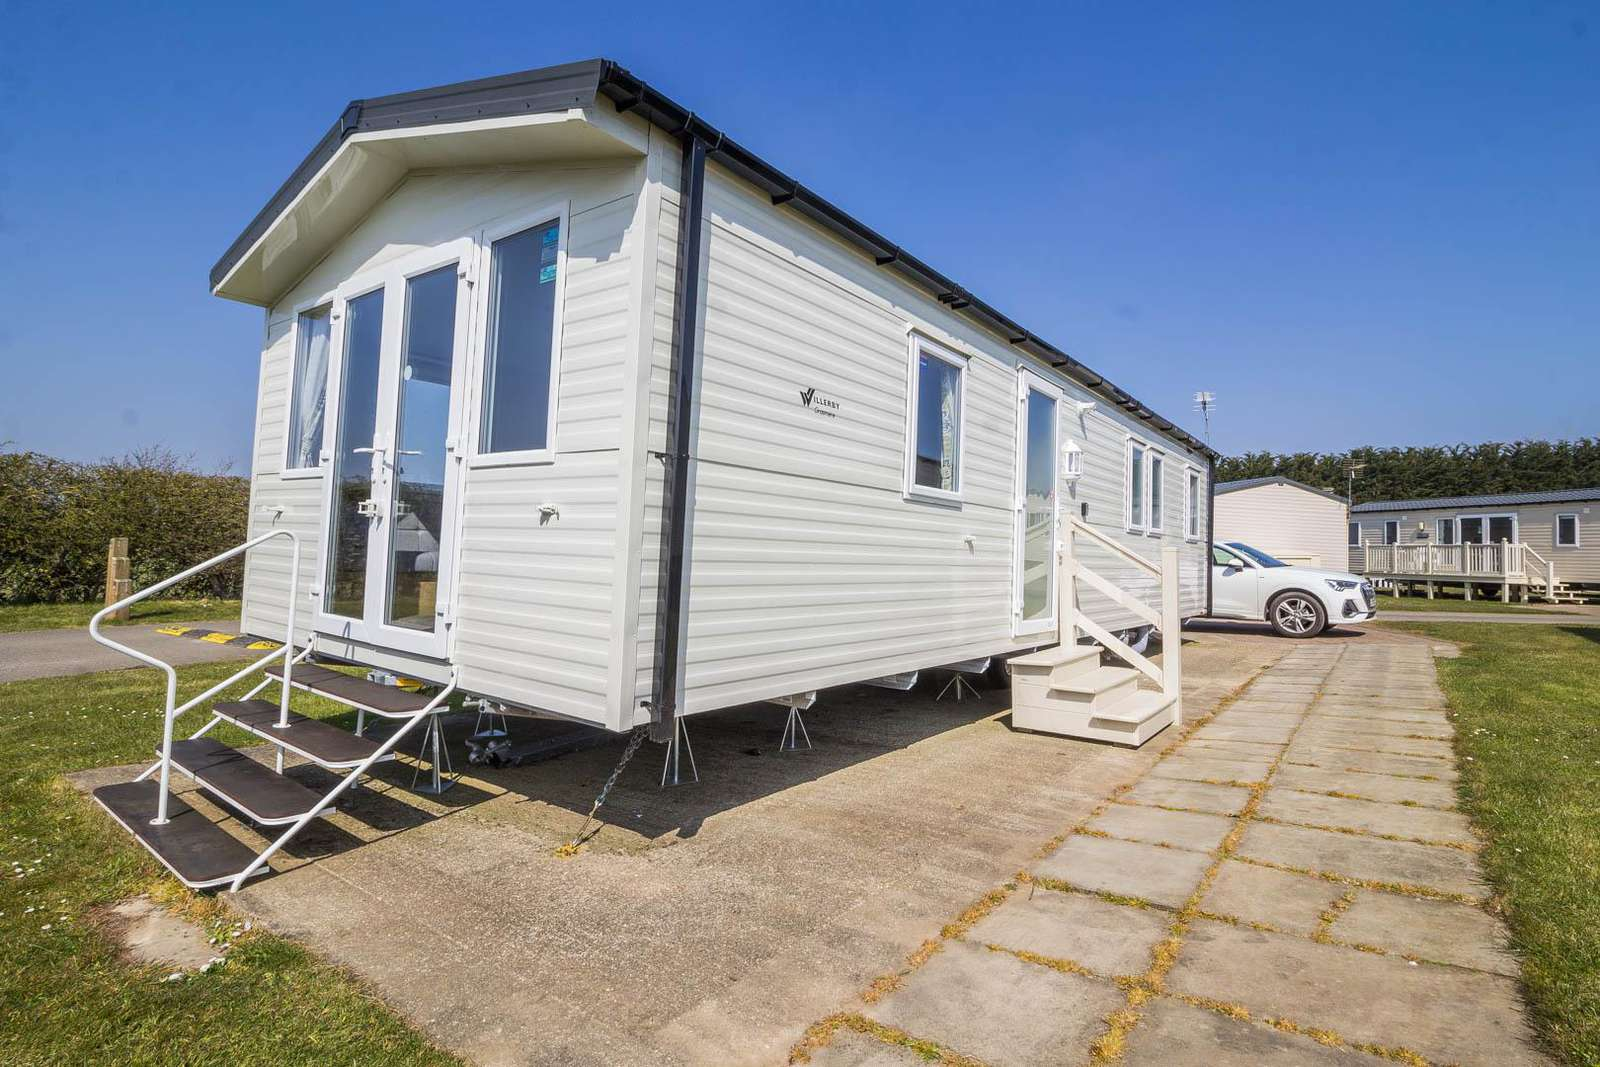 41012F – Farmfield area, 3 bed, 8 berth caravan with free WiFi, D/G & C/H. Diamond rated. - property